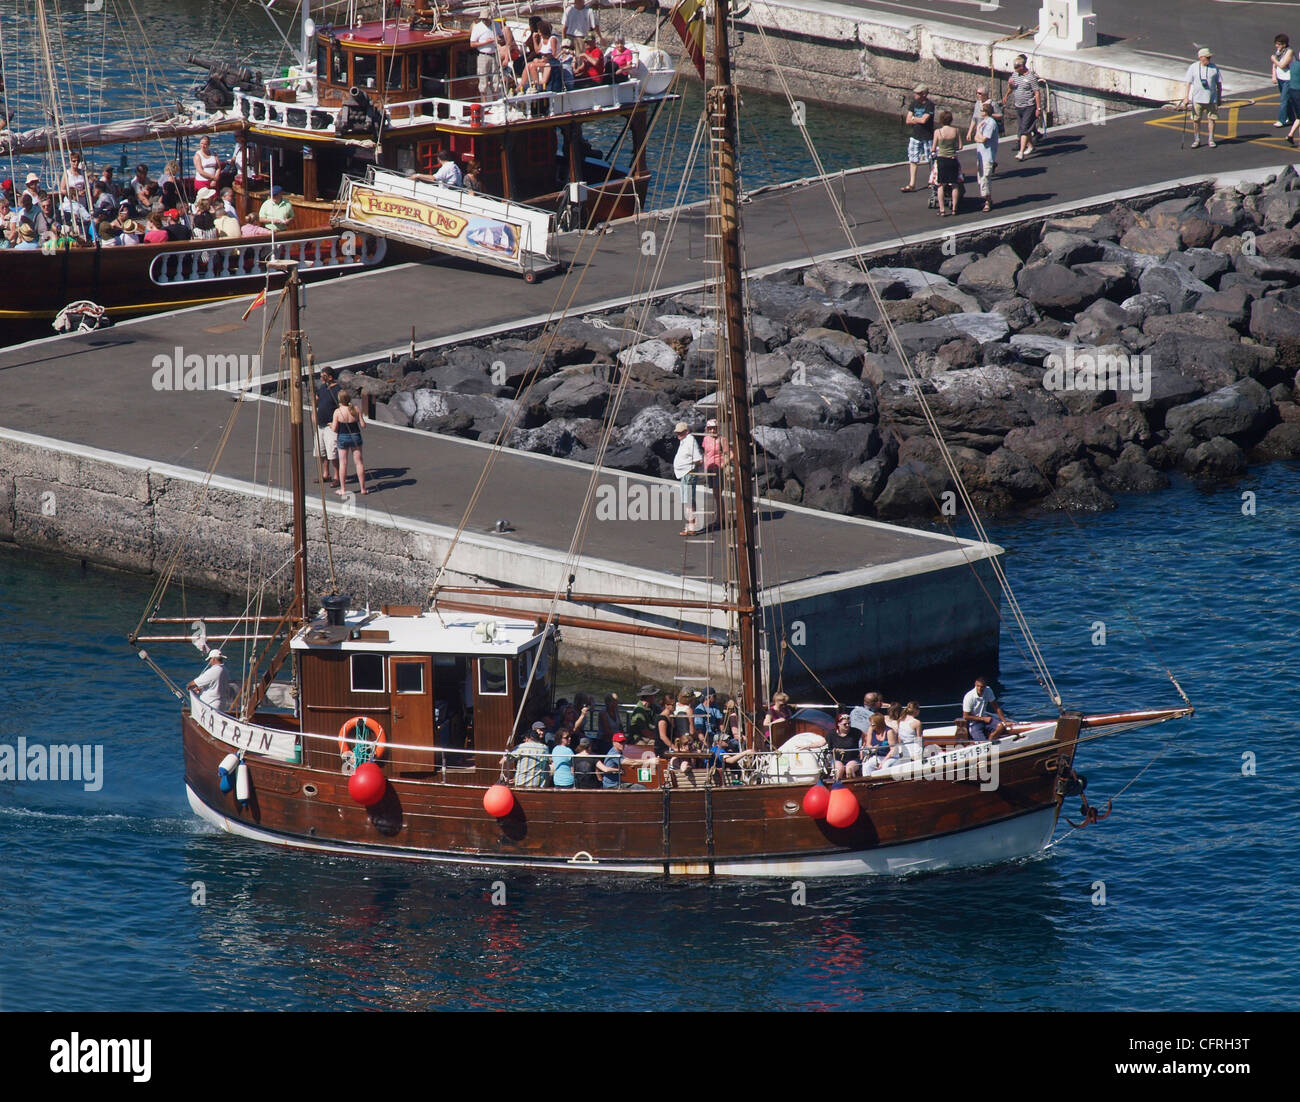 BOAT  LEAVING  LOS GIGANTES HARBOUR WHALE AND DOLPHIN WATCHING TRIP  TENERIFE SPAIN - Stock Image